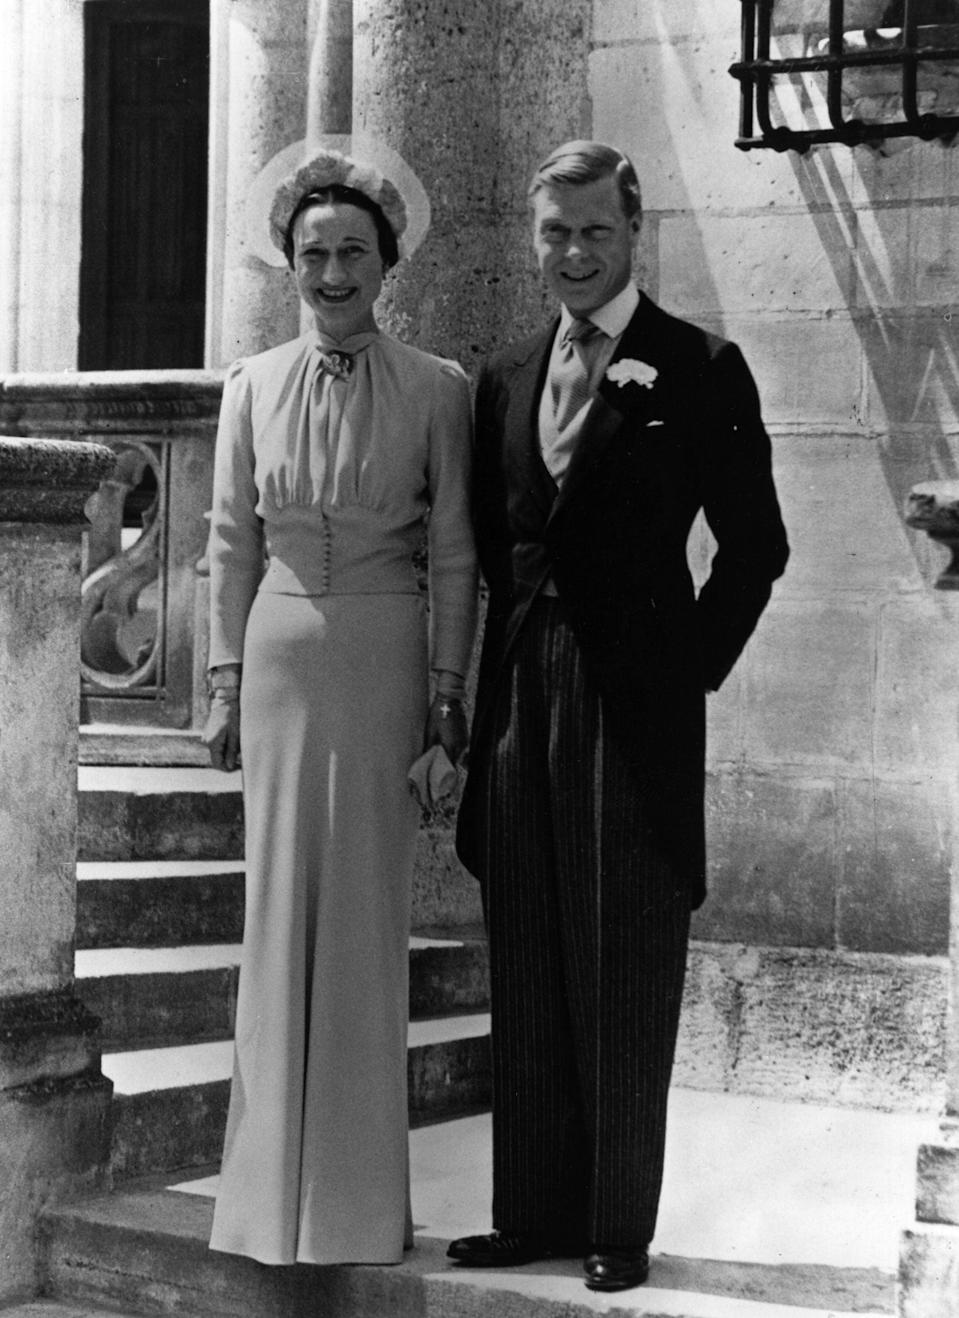 The Duke and Duchess of Windsor on their wedding day in 1937, a year after his abdication caused a constituional crisis and a life-long rift with the British royal familyGetty Images